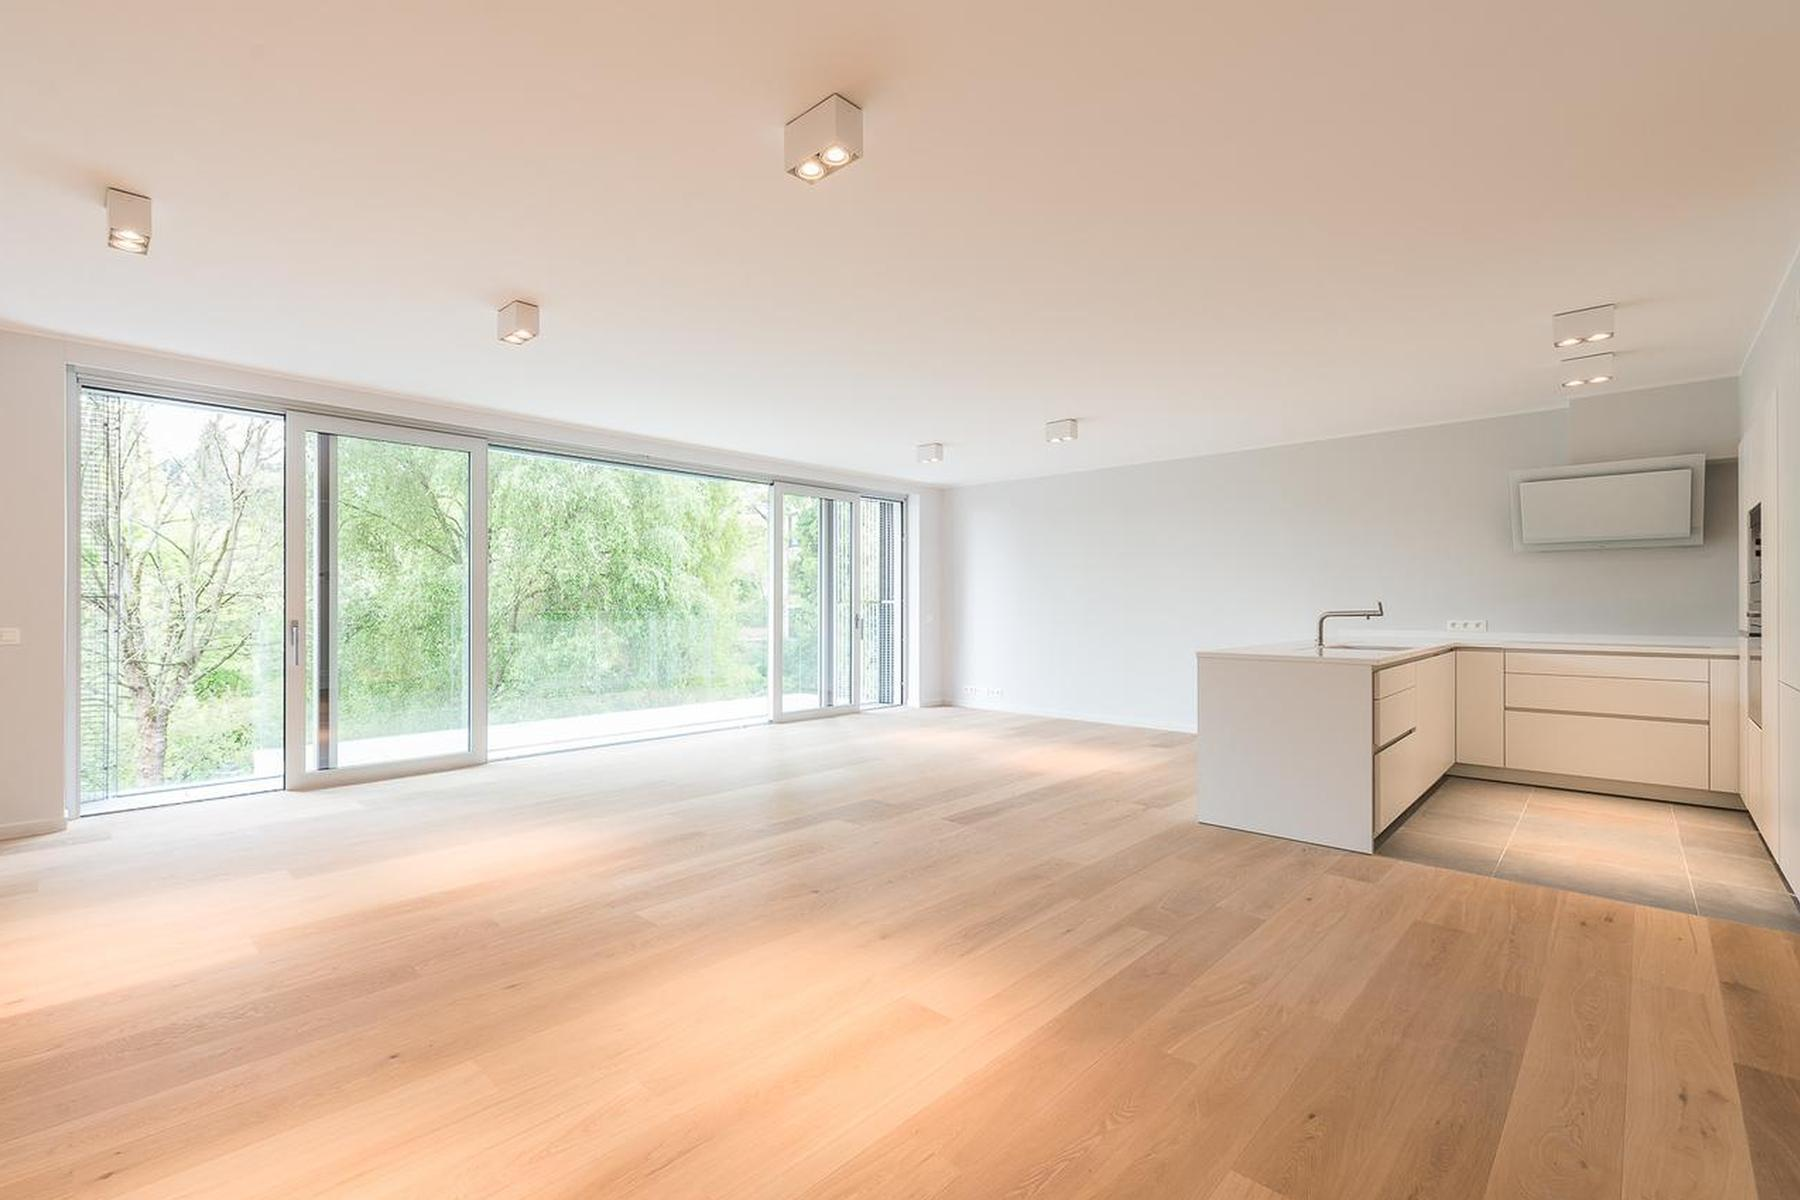 Apartment for Rent at Ixelles I Parc Tenbosch 41 Rue Hector Denis Ixelles, Brussels, 1050 Belgium